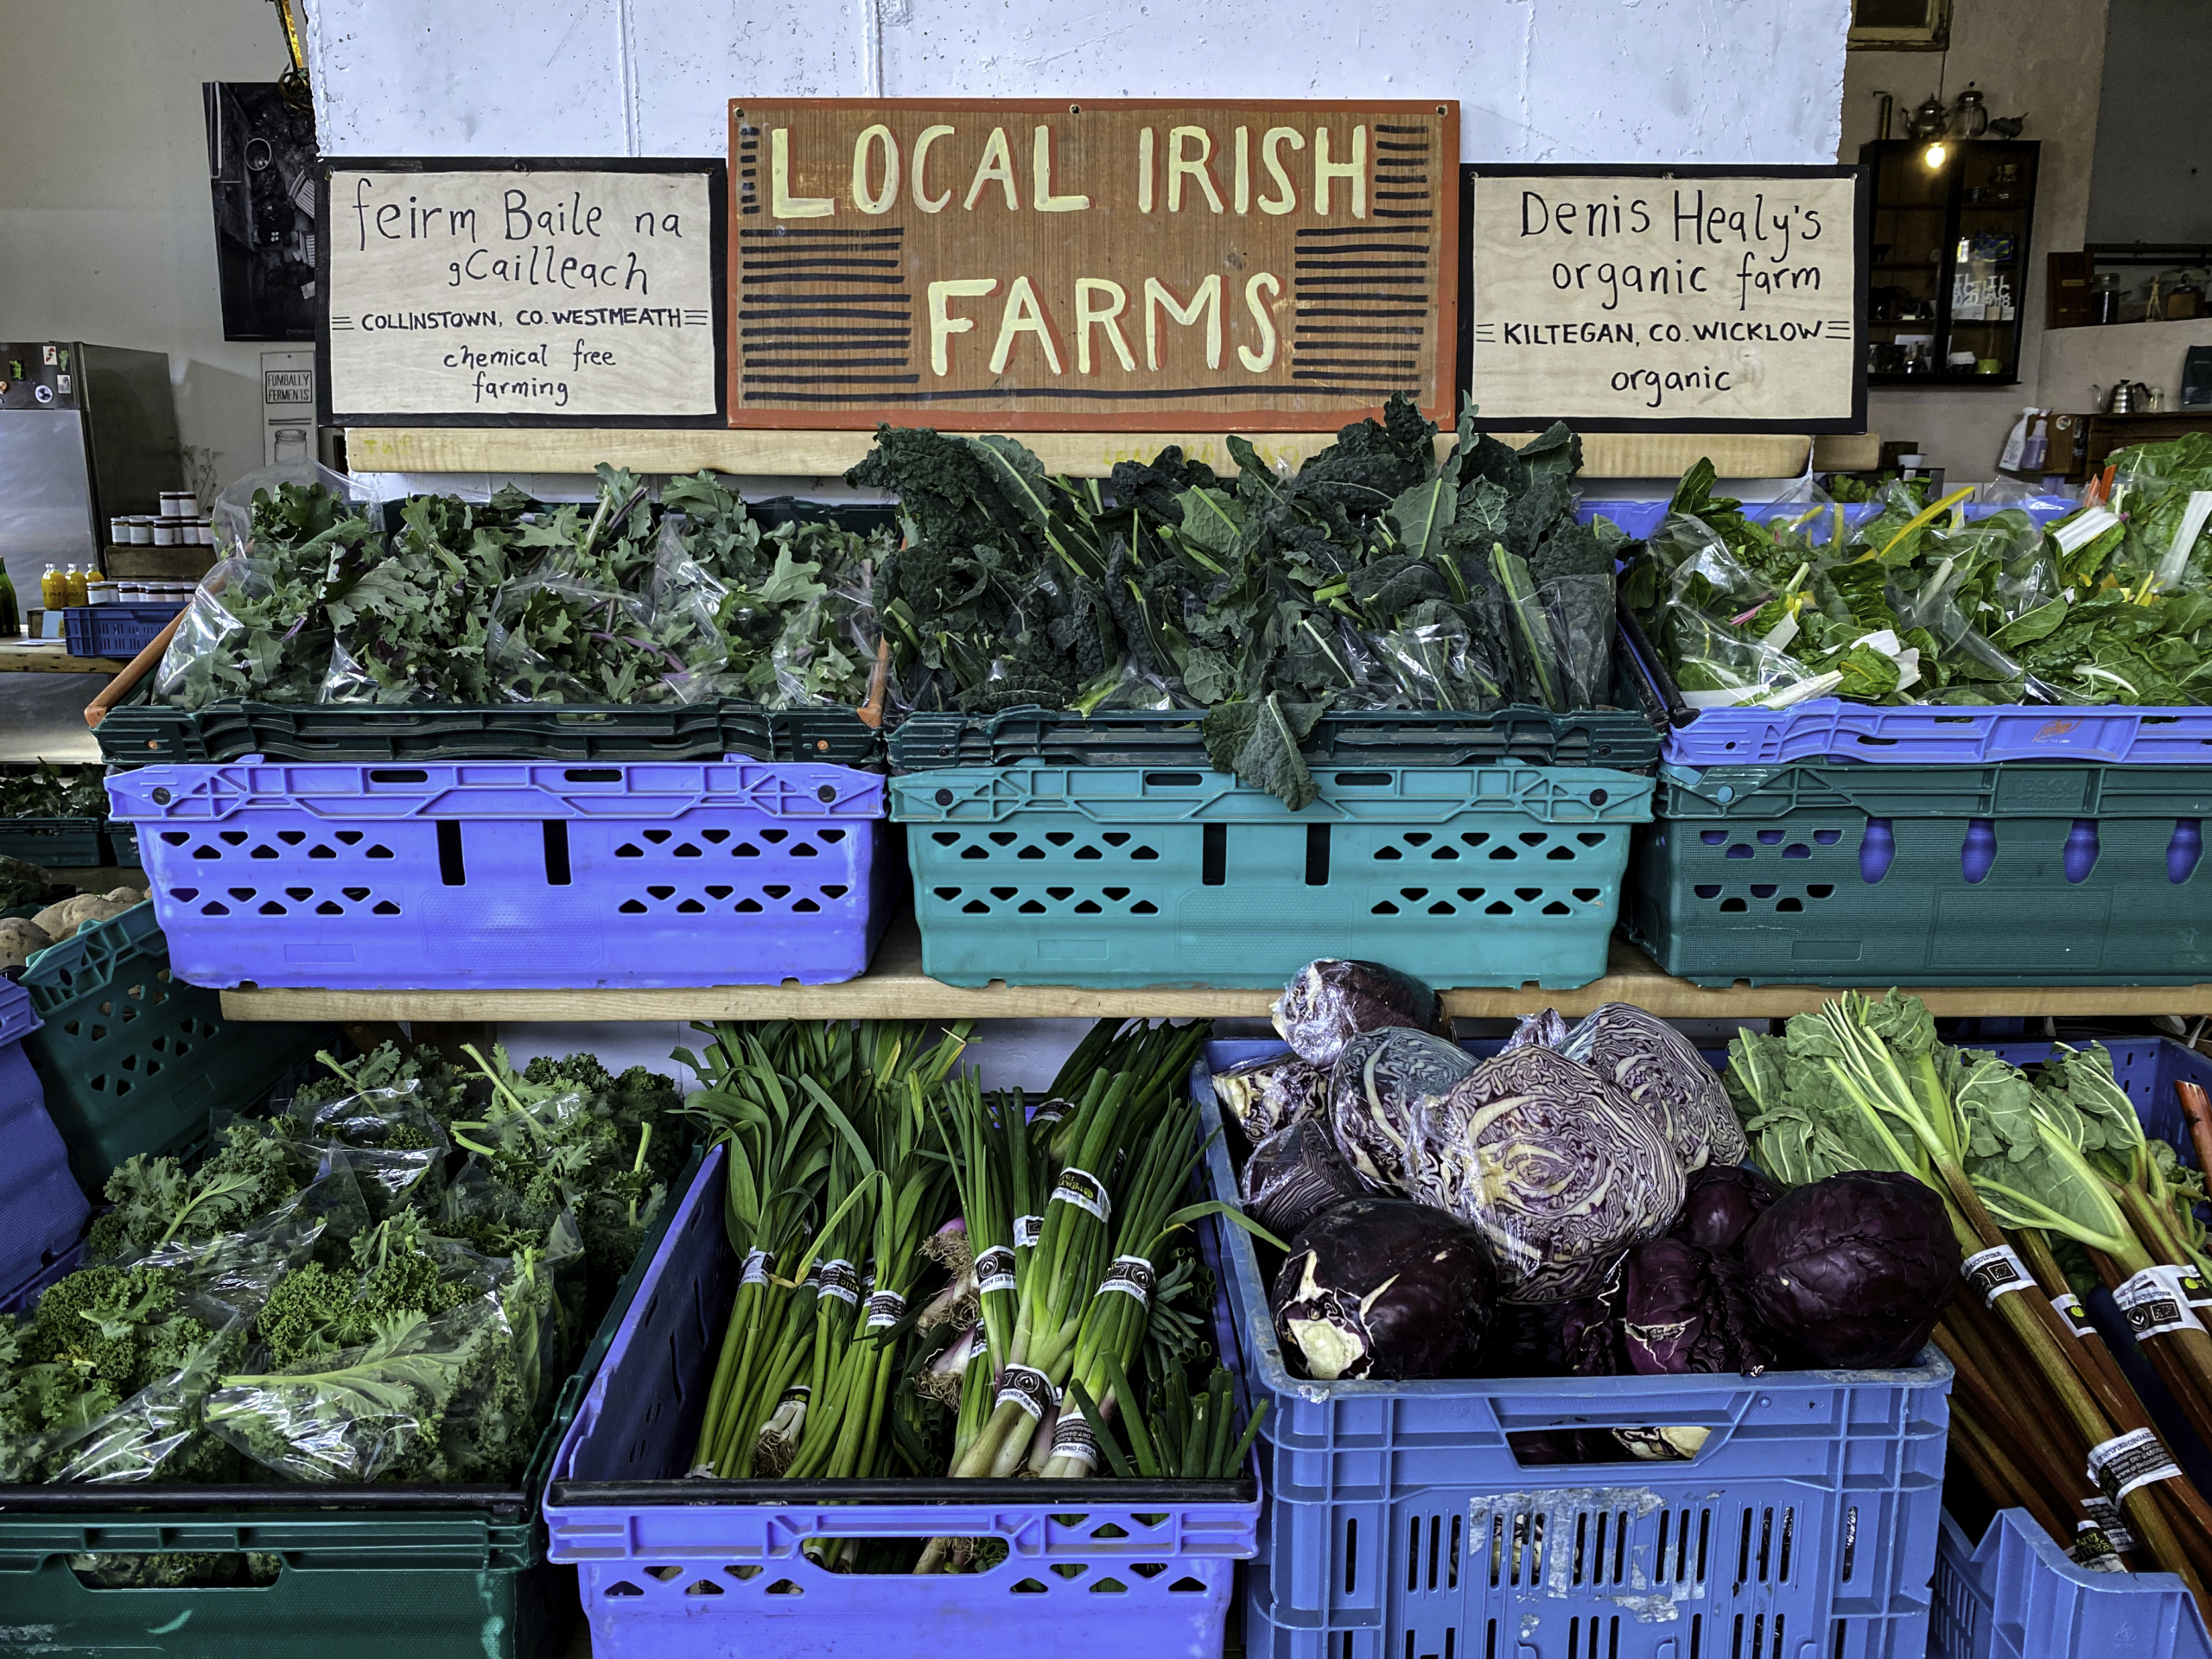 Local Irish Farm Produce